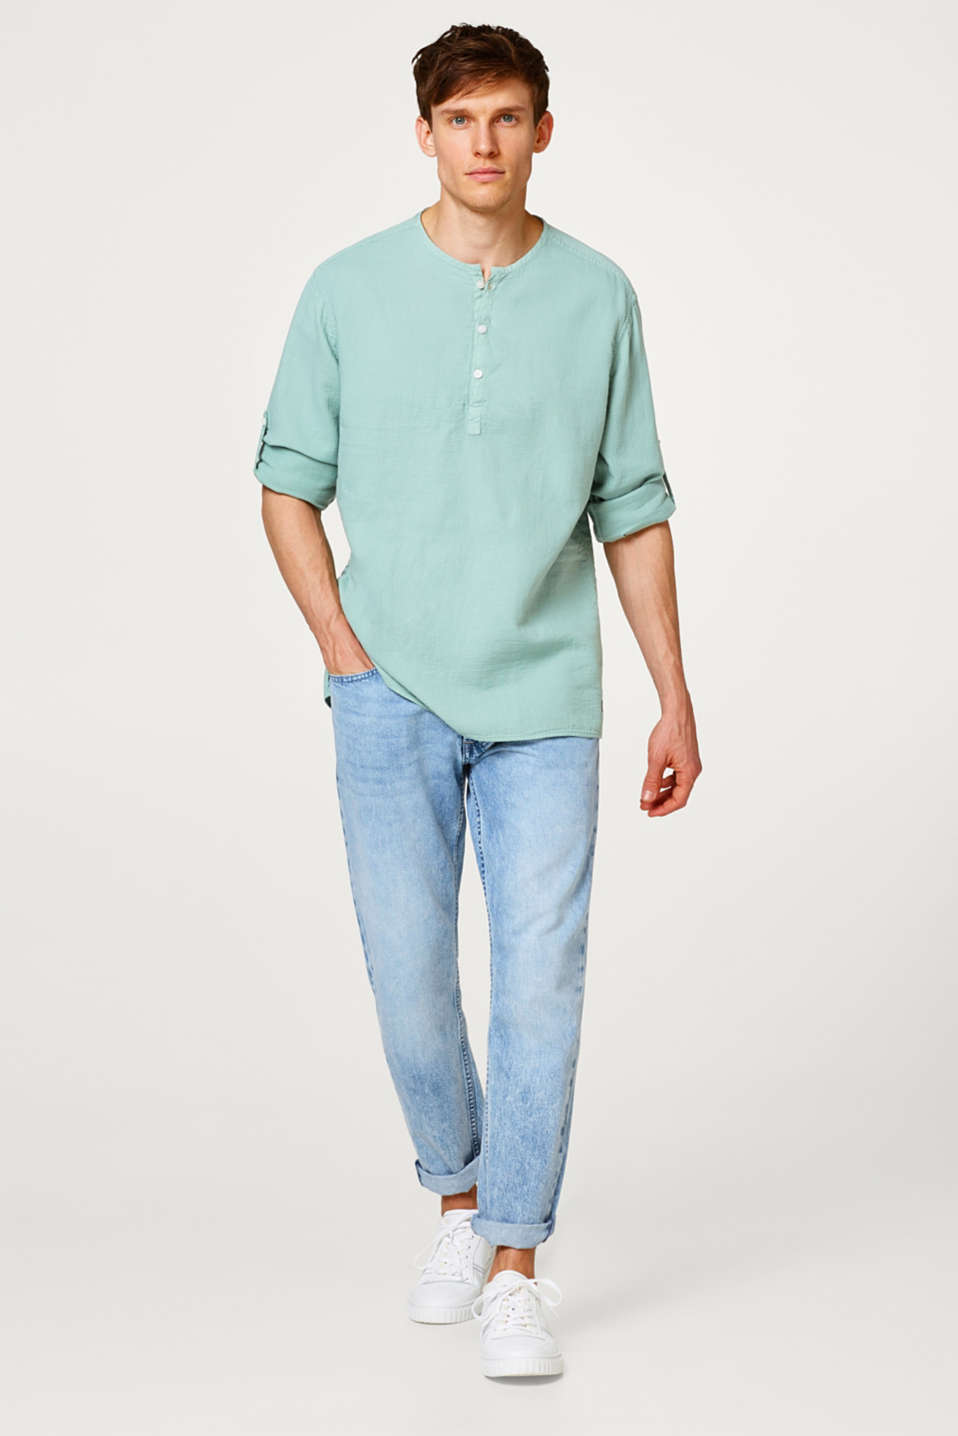 Shirt with a Henley neckline, made of cotton